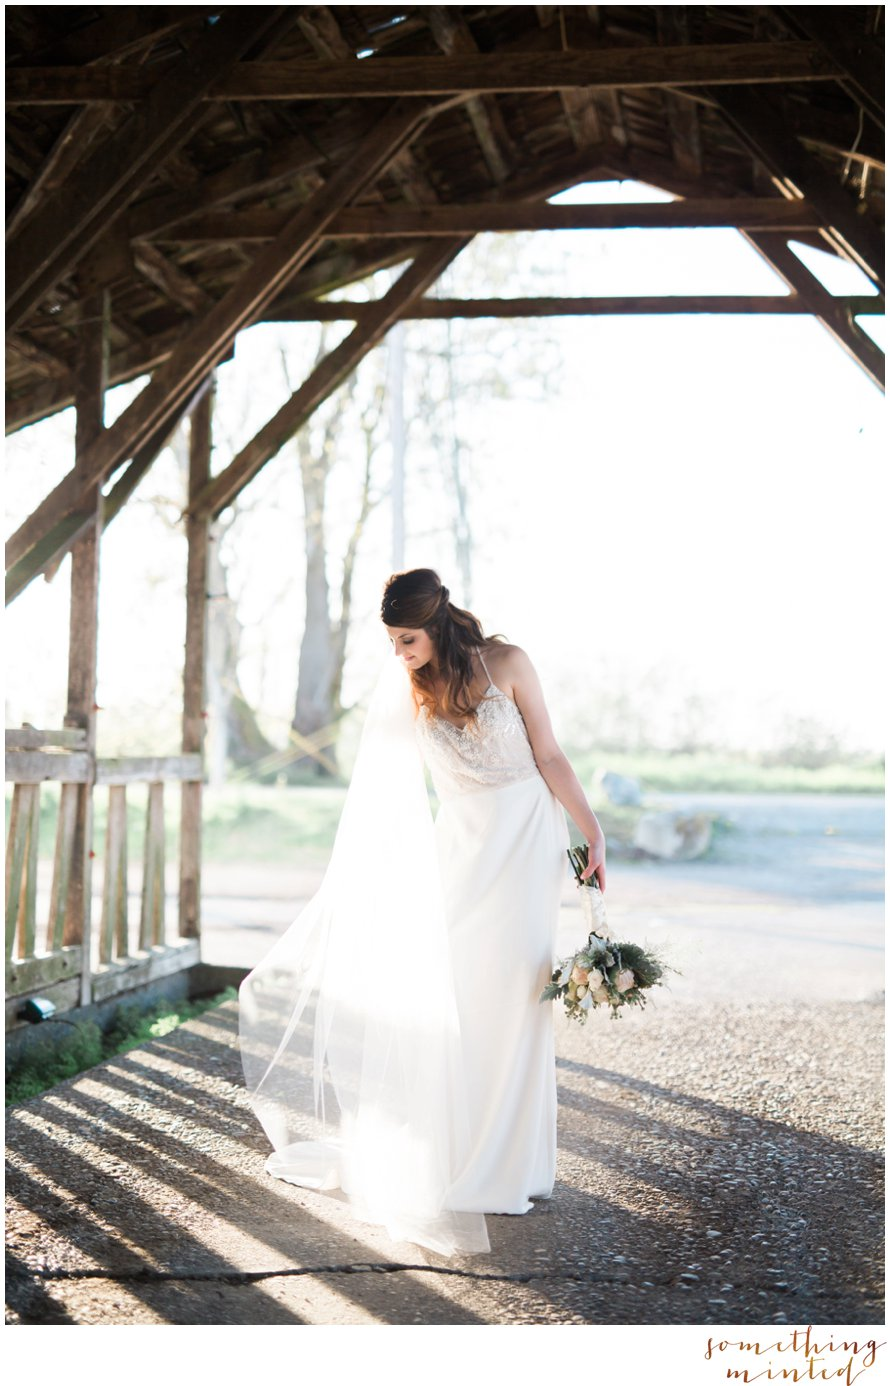 Romantic Photography at Dairyland in Snohomish by Something Minted Photography